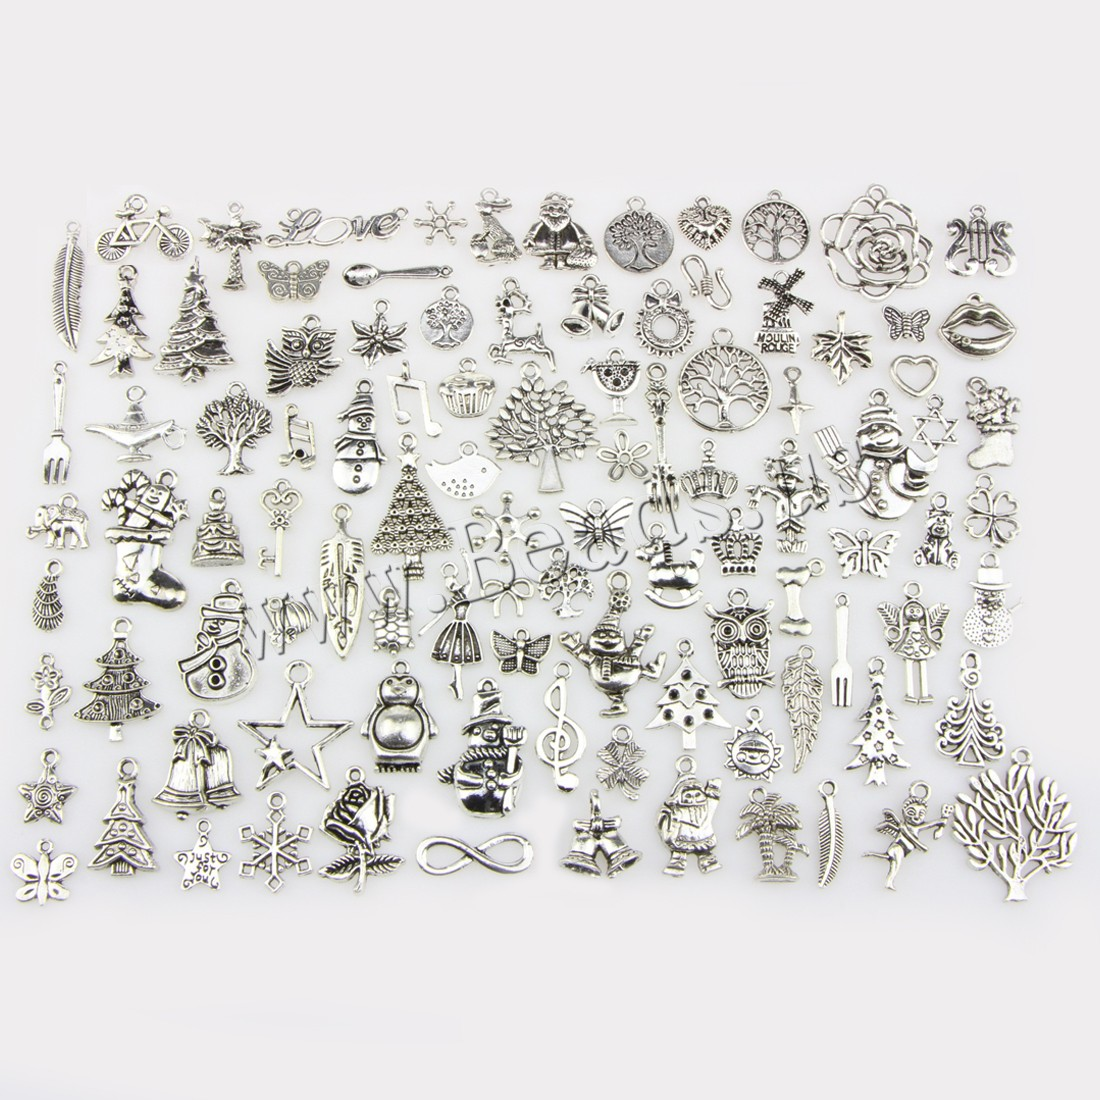 Buy Zinc Alloy Christmas Pendants antique silver color plated Christmas jewelry & mixed nickel lead & cadmium free 13-33mm Hole:Approx 0.5-1mm 100PCs/Set Sold Set